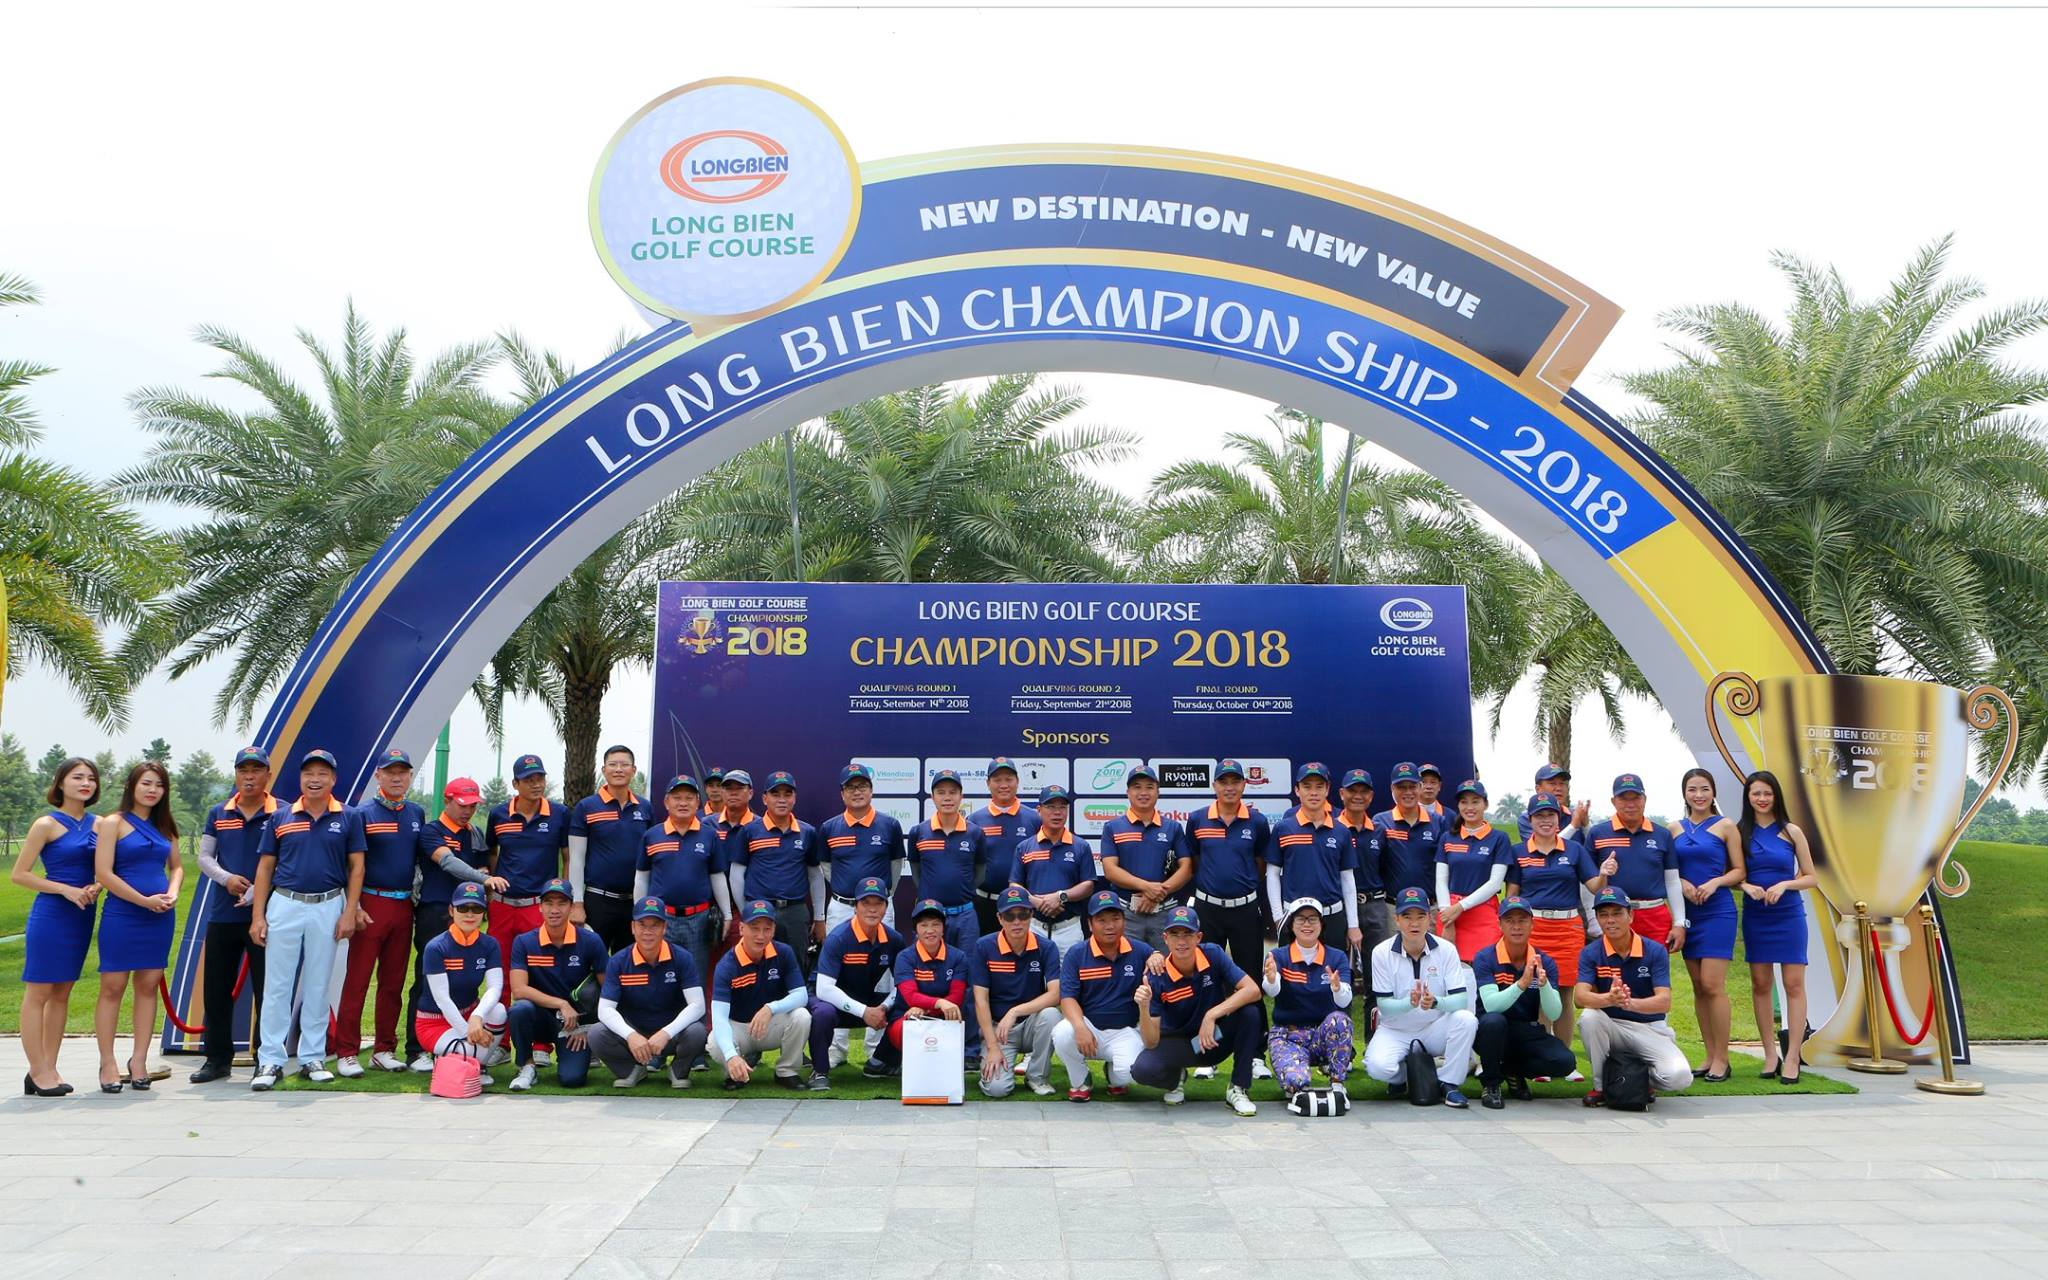 Long Bien Golf Course Championship 2018 Vòng loại 1